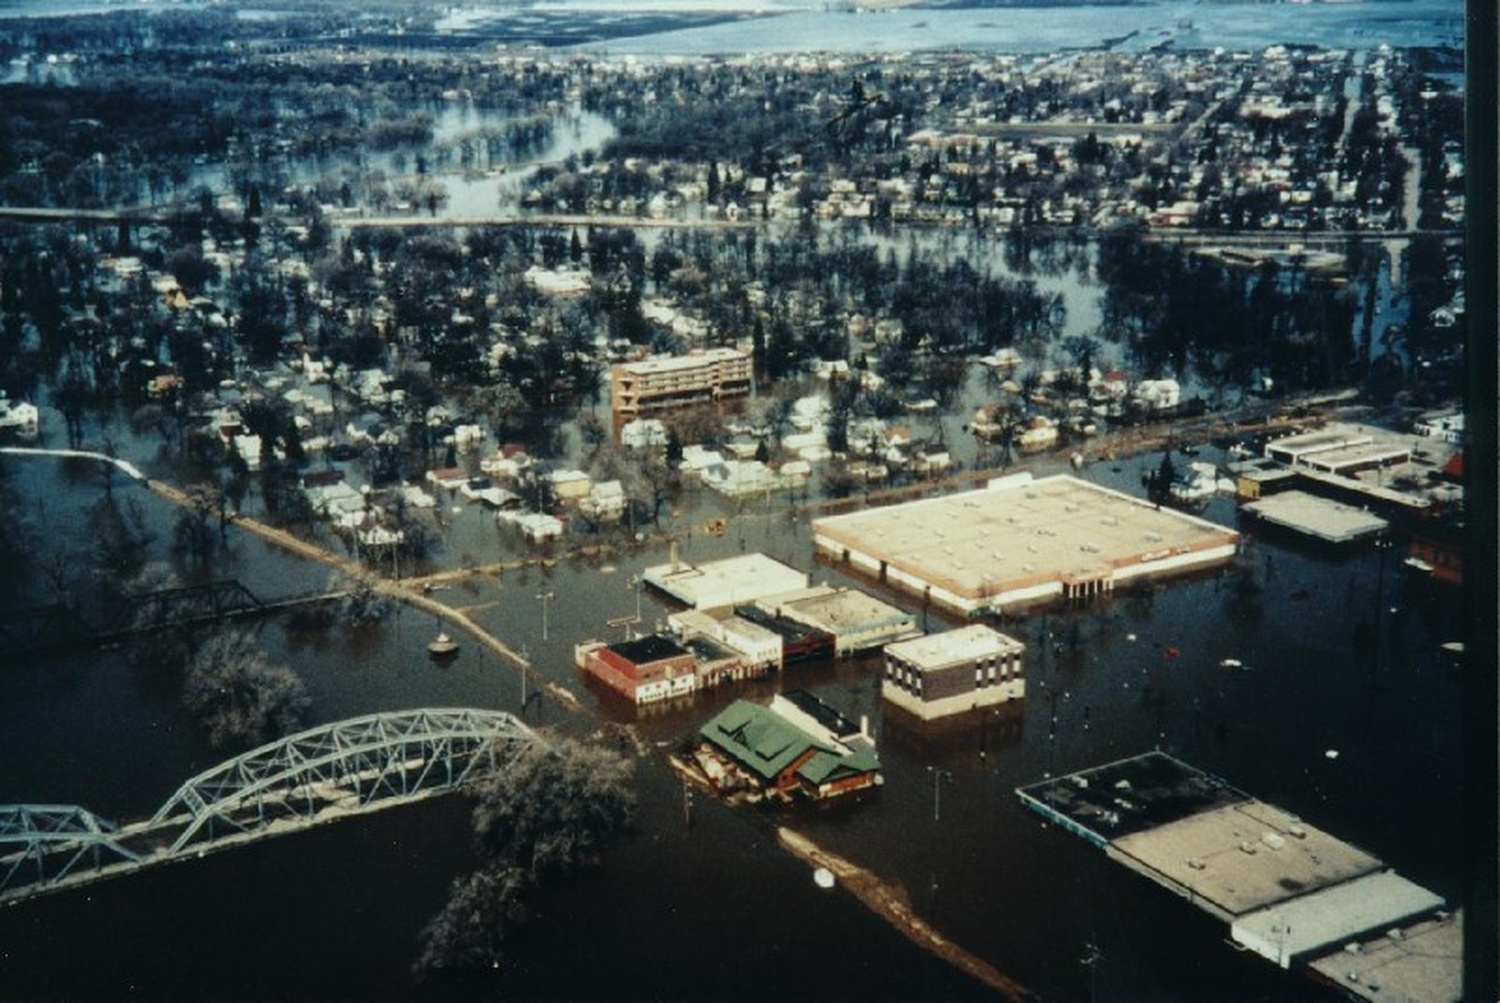 red river flood of 1997 High quality content by wikipedia articles the red river flood of 1997 was a major flood that occurred in april and may 1997, along the red river of the north in north dakota, minnesota, and southern manitoba.